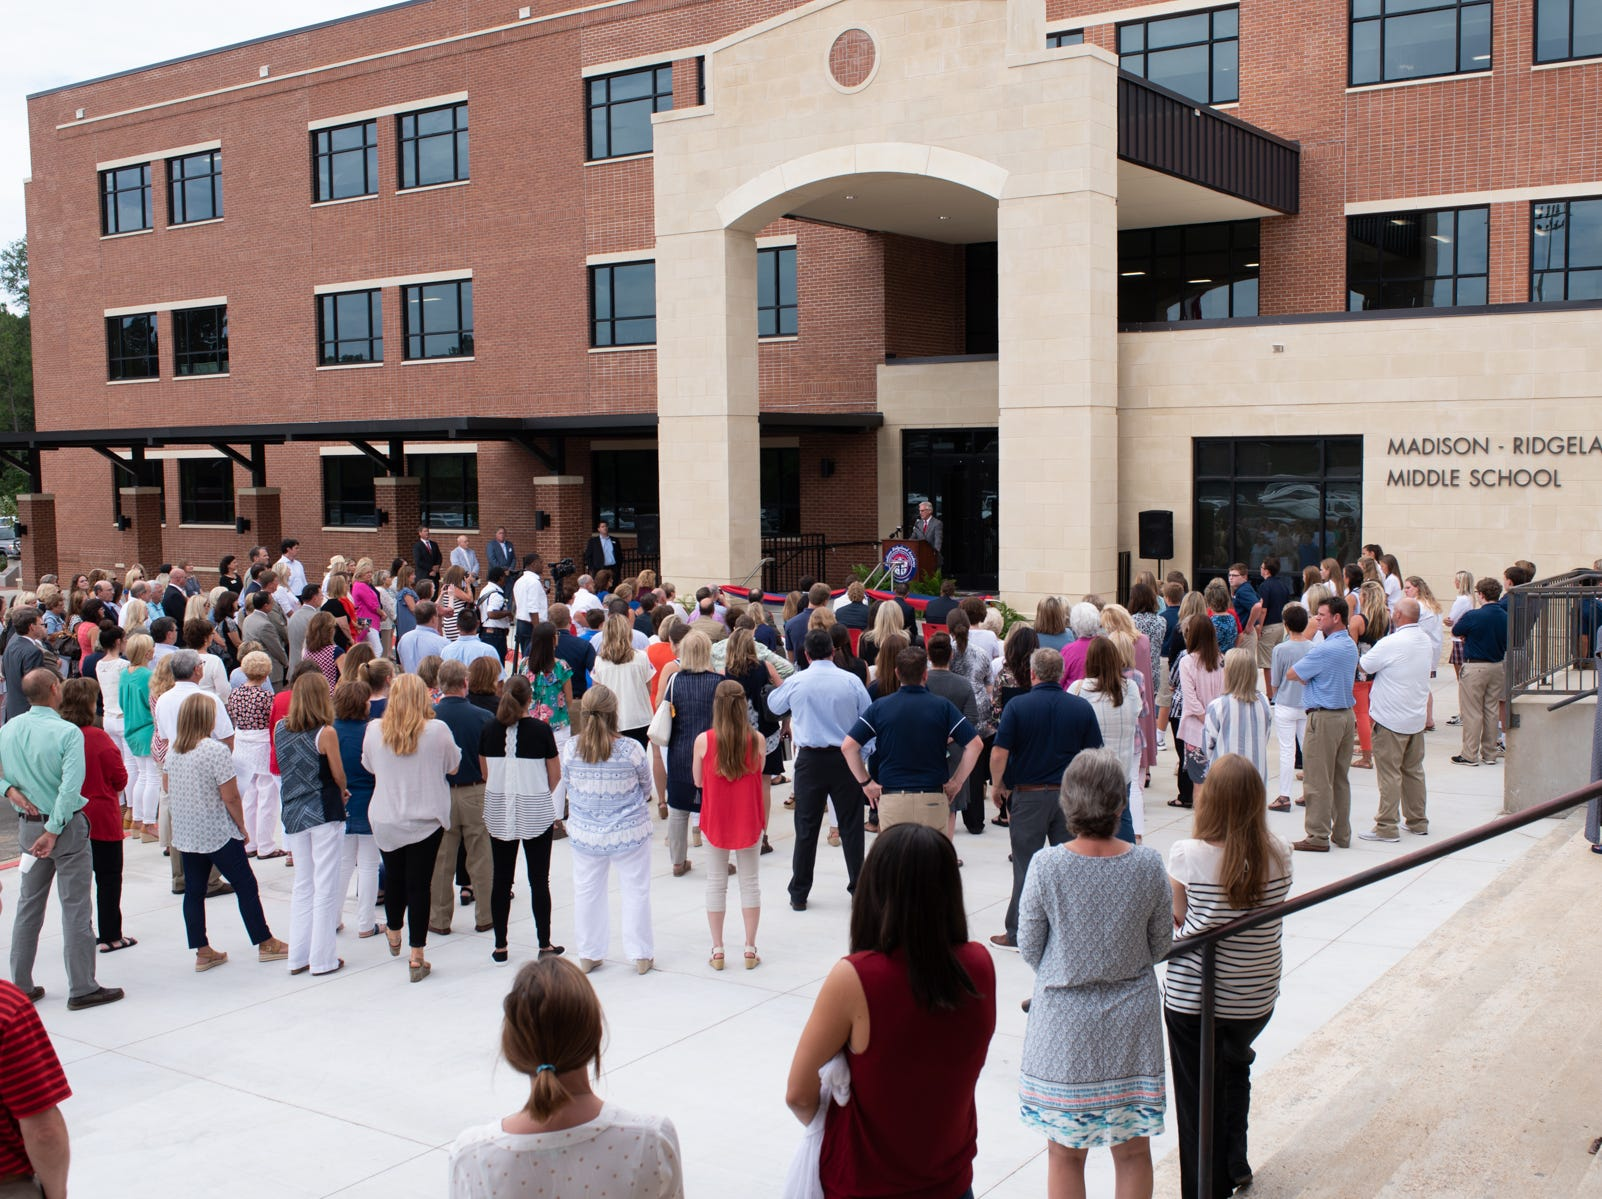 Faculty, friends alumnus and patrons gathered for the ceremony.